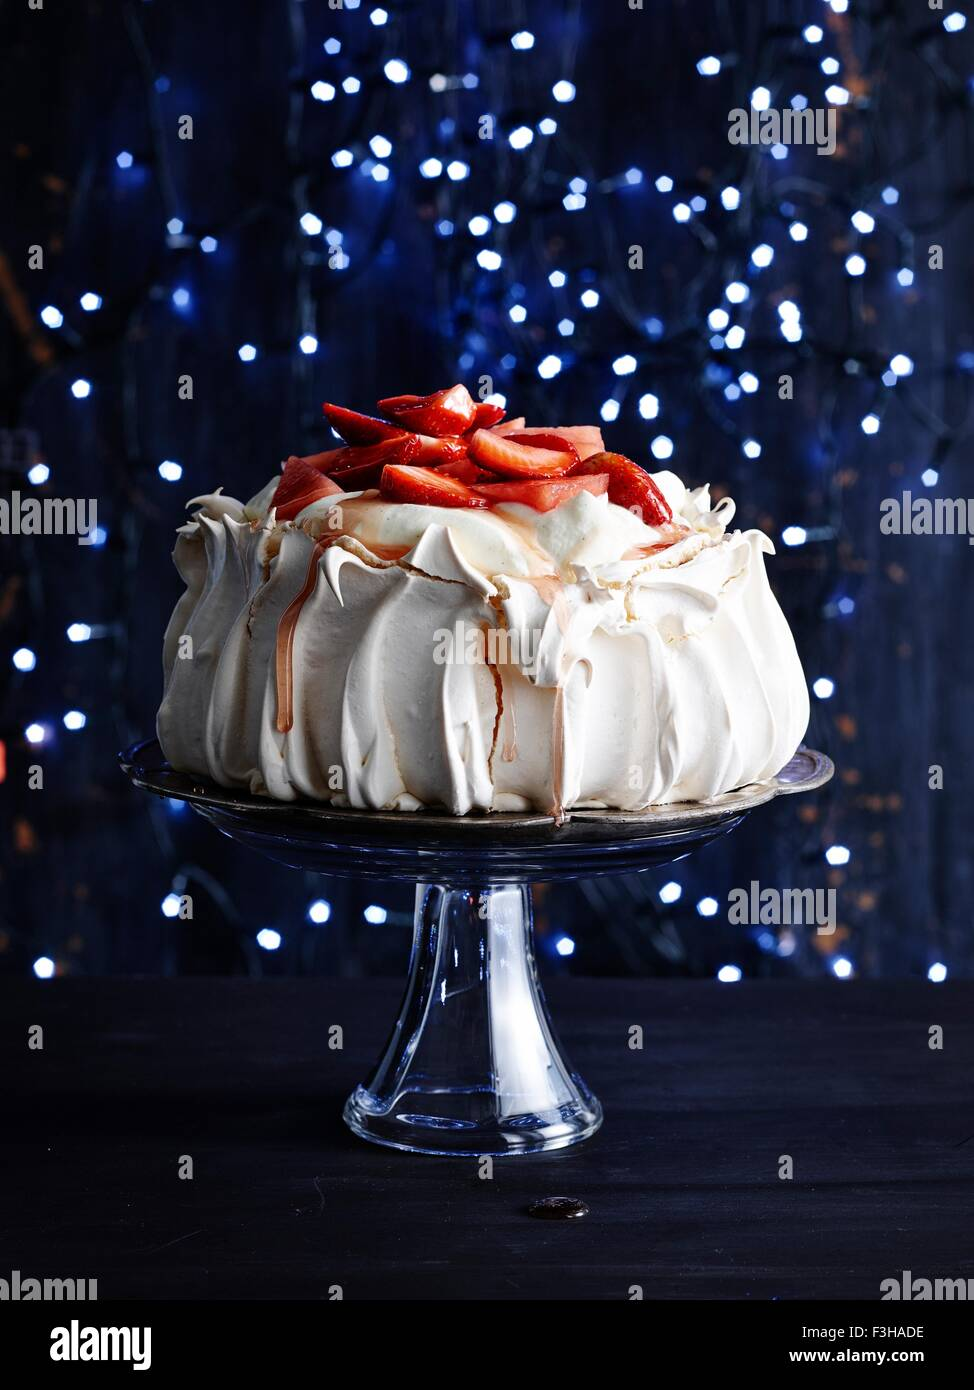 Strawberry covered pavlova on glass cake stand in front of sparkly navy blue background - Stock Image